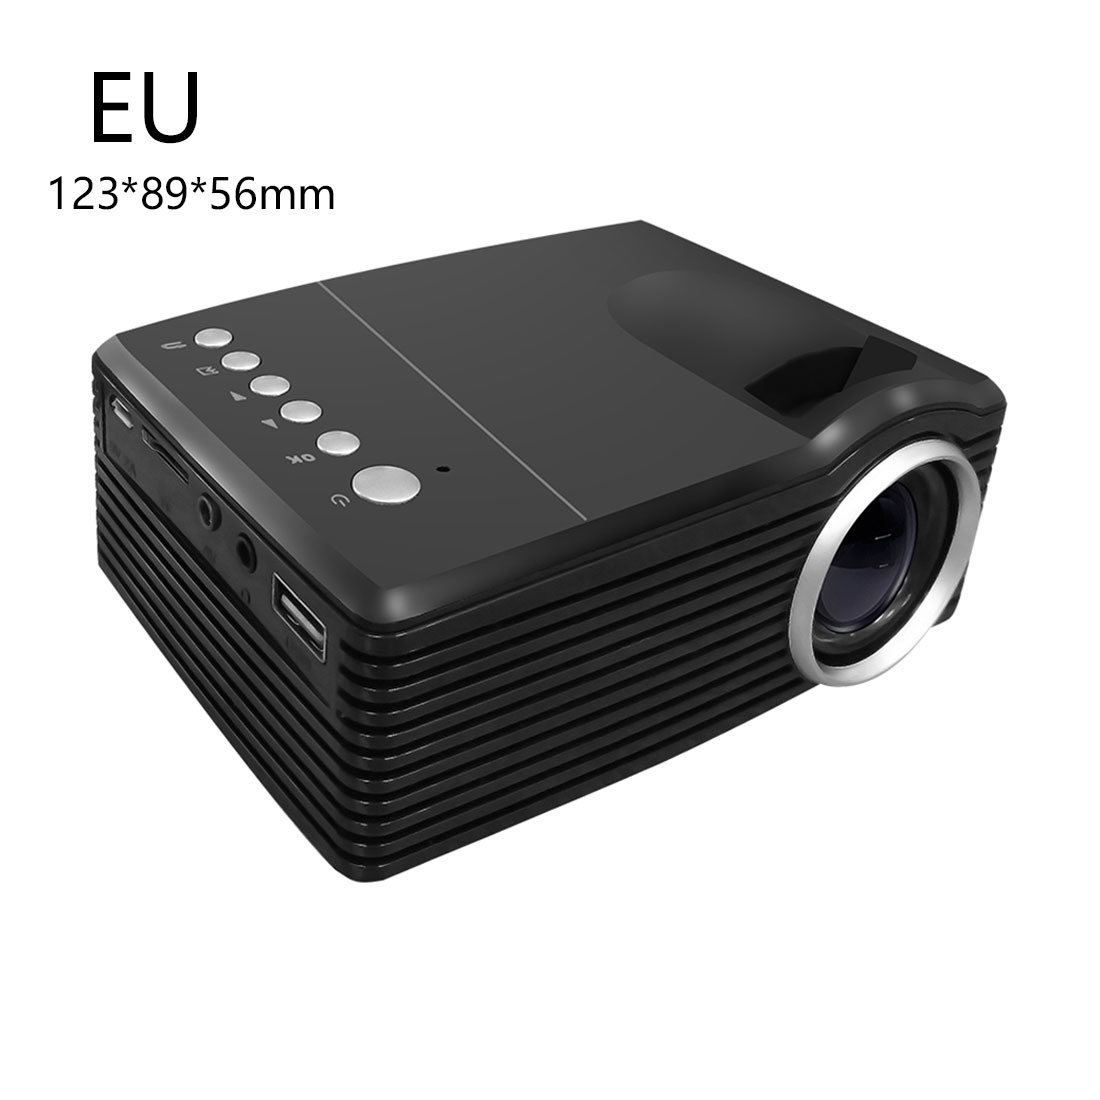 centechia MG300 Portable LCD LED Projector 3.5mm Audio 320x240 Pixel HDMI USB Mini MG300 Projector Home Media Player EU Plug original yg300 mini projector full hd led projector 500lm audio hdmi usb mini yg 300 proyector home theater media player beamer